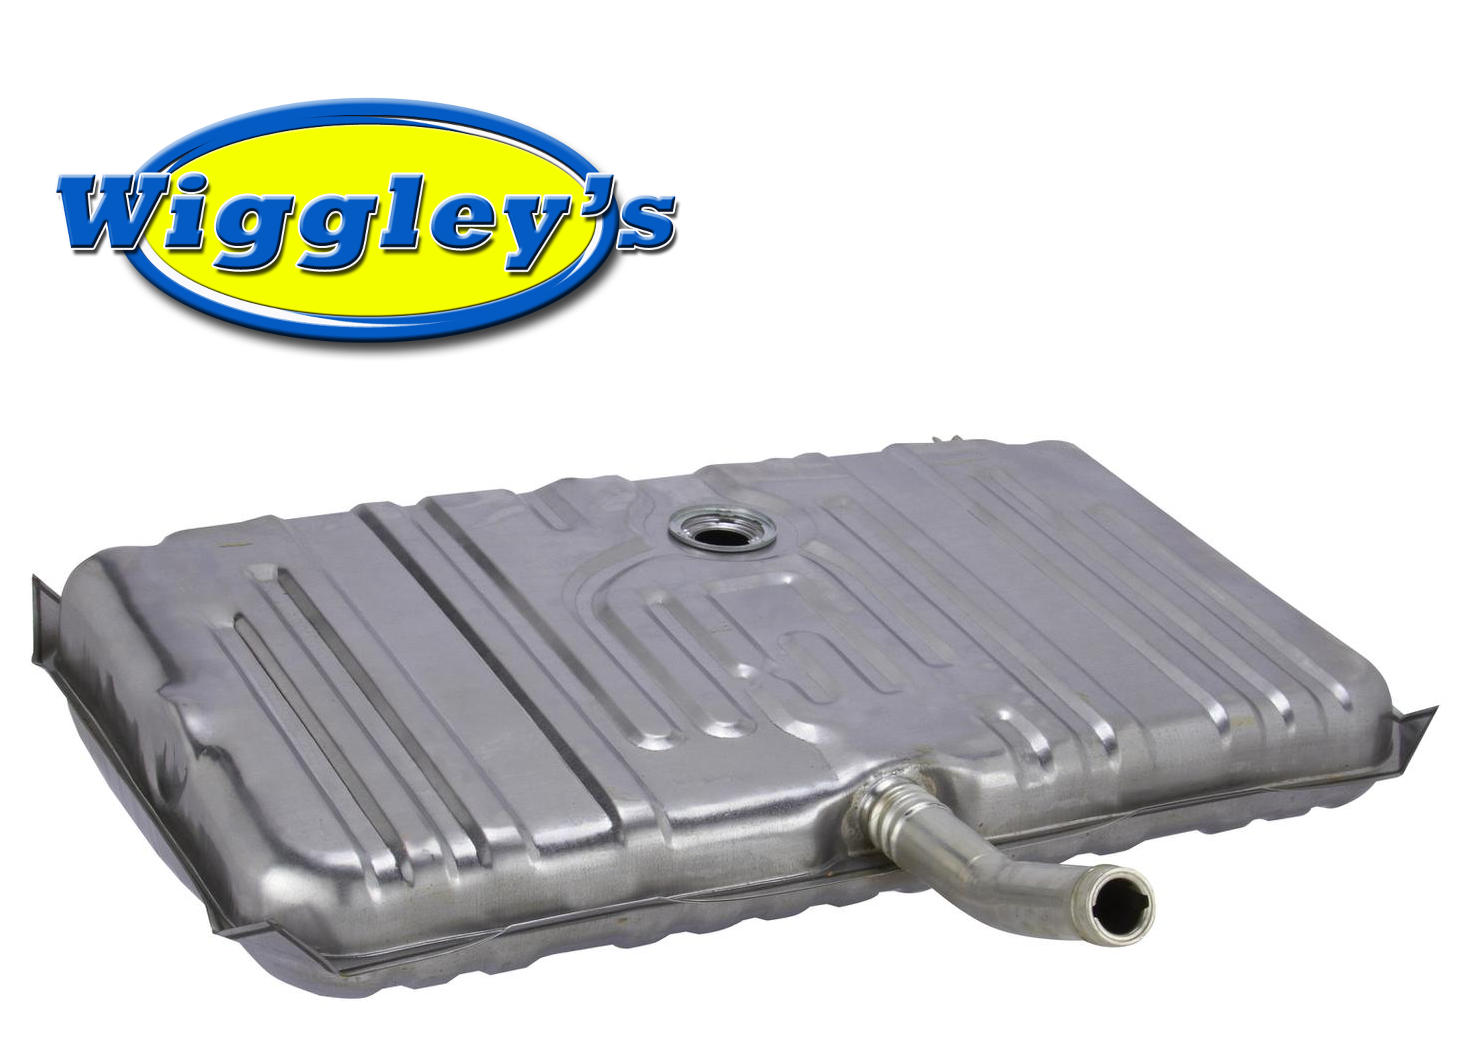 STAINLESS SATEEL TANK IGM34T-SS FOR 70 CHEVELLE MONTE CARLO 6.6L-V8 w/o E.E.C.